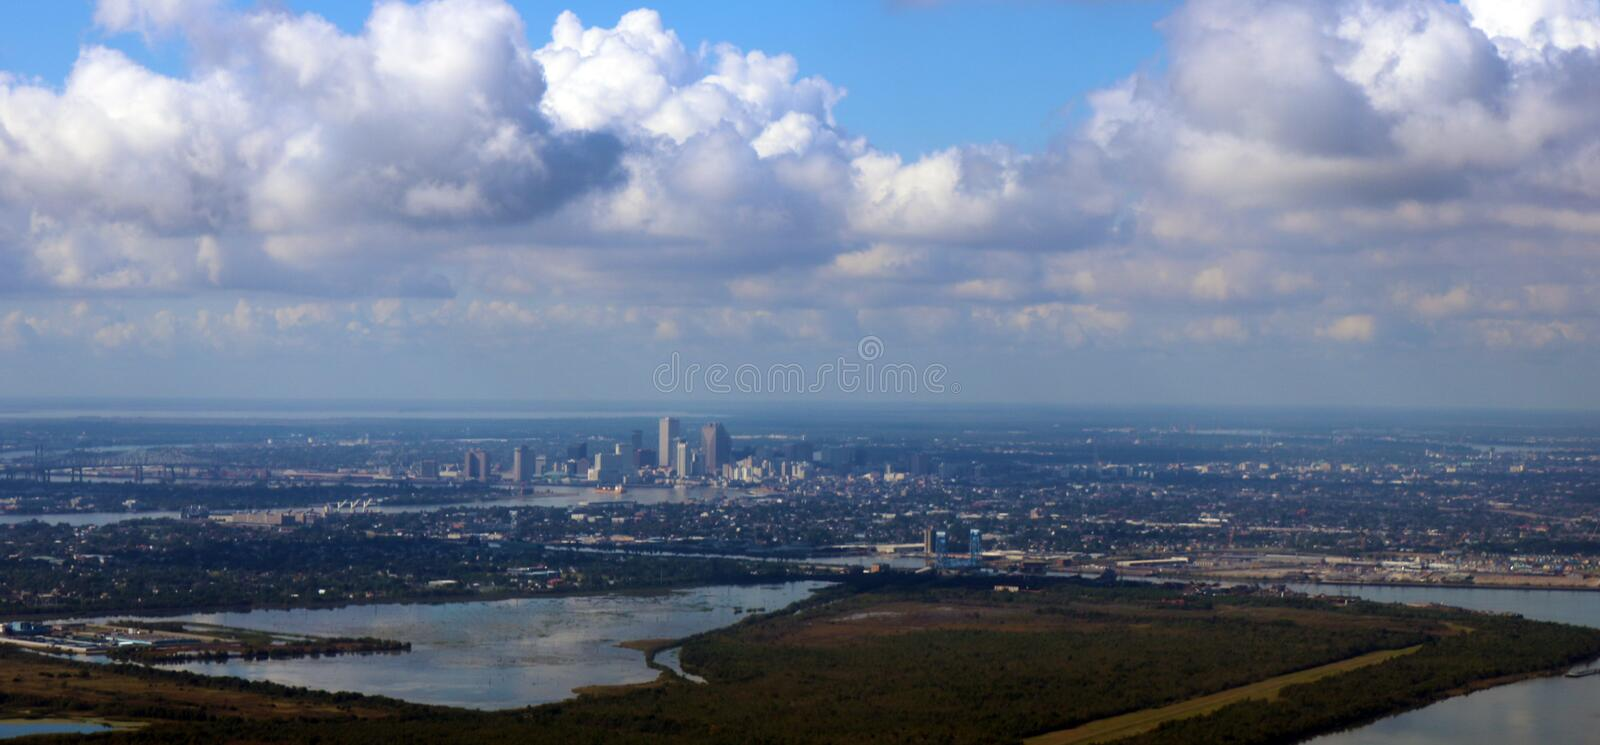 Panoramic New Orleans city Sky picture showing skyline stock photo